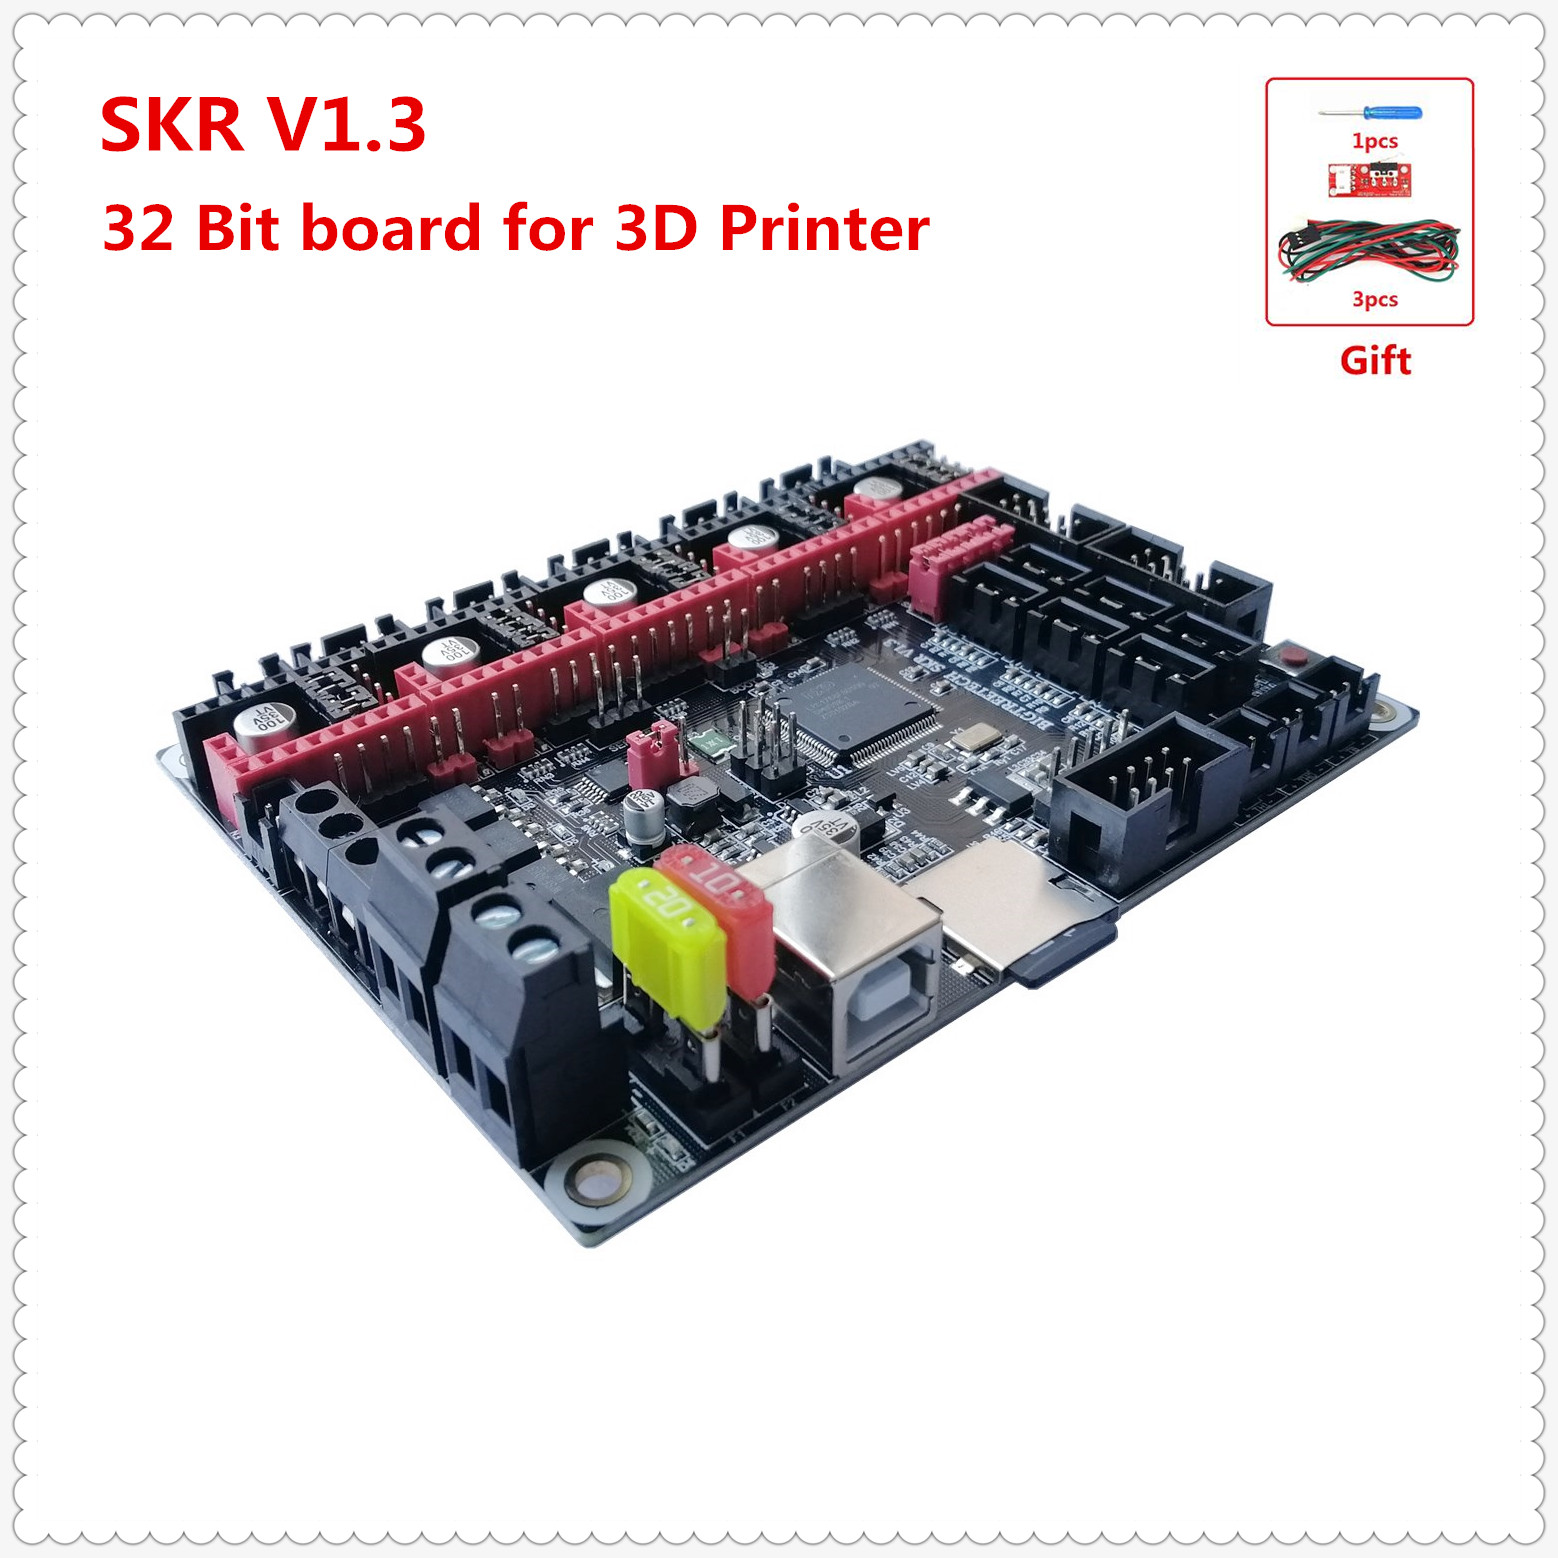 3D Printer ARM 32-bit CPU Motherboard BIGTREETECH SKR V1.3 Control Plate Smoothieboard Marlin 2.0 3d Printer Upgrade Board